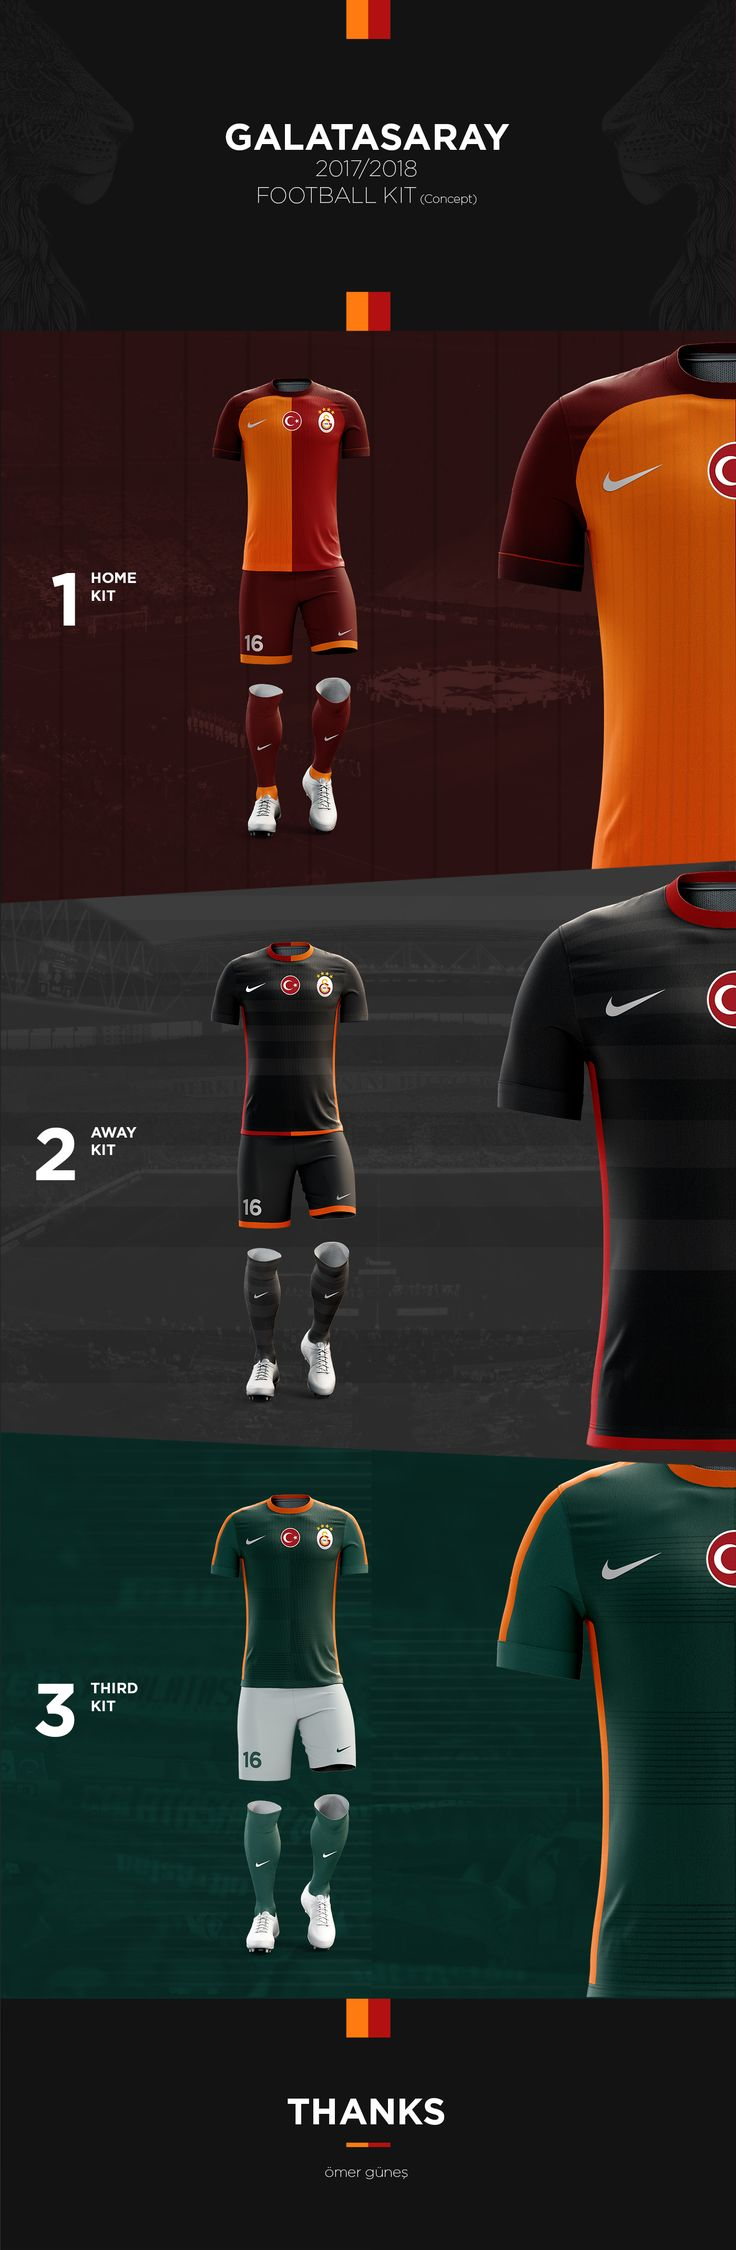 Galatasaray 2017-2018 Football Kit (Concept Design) on Behance